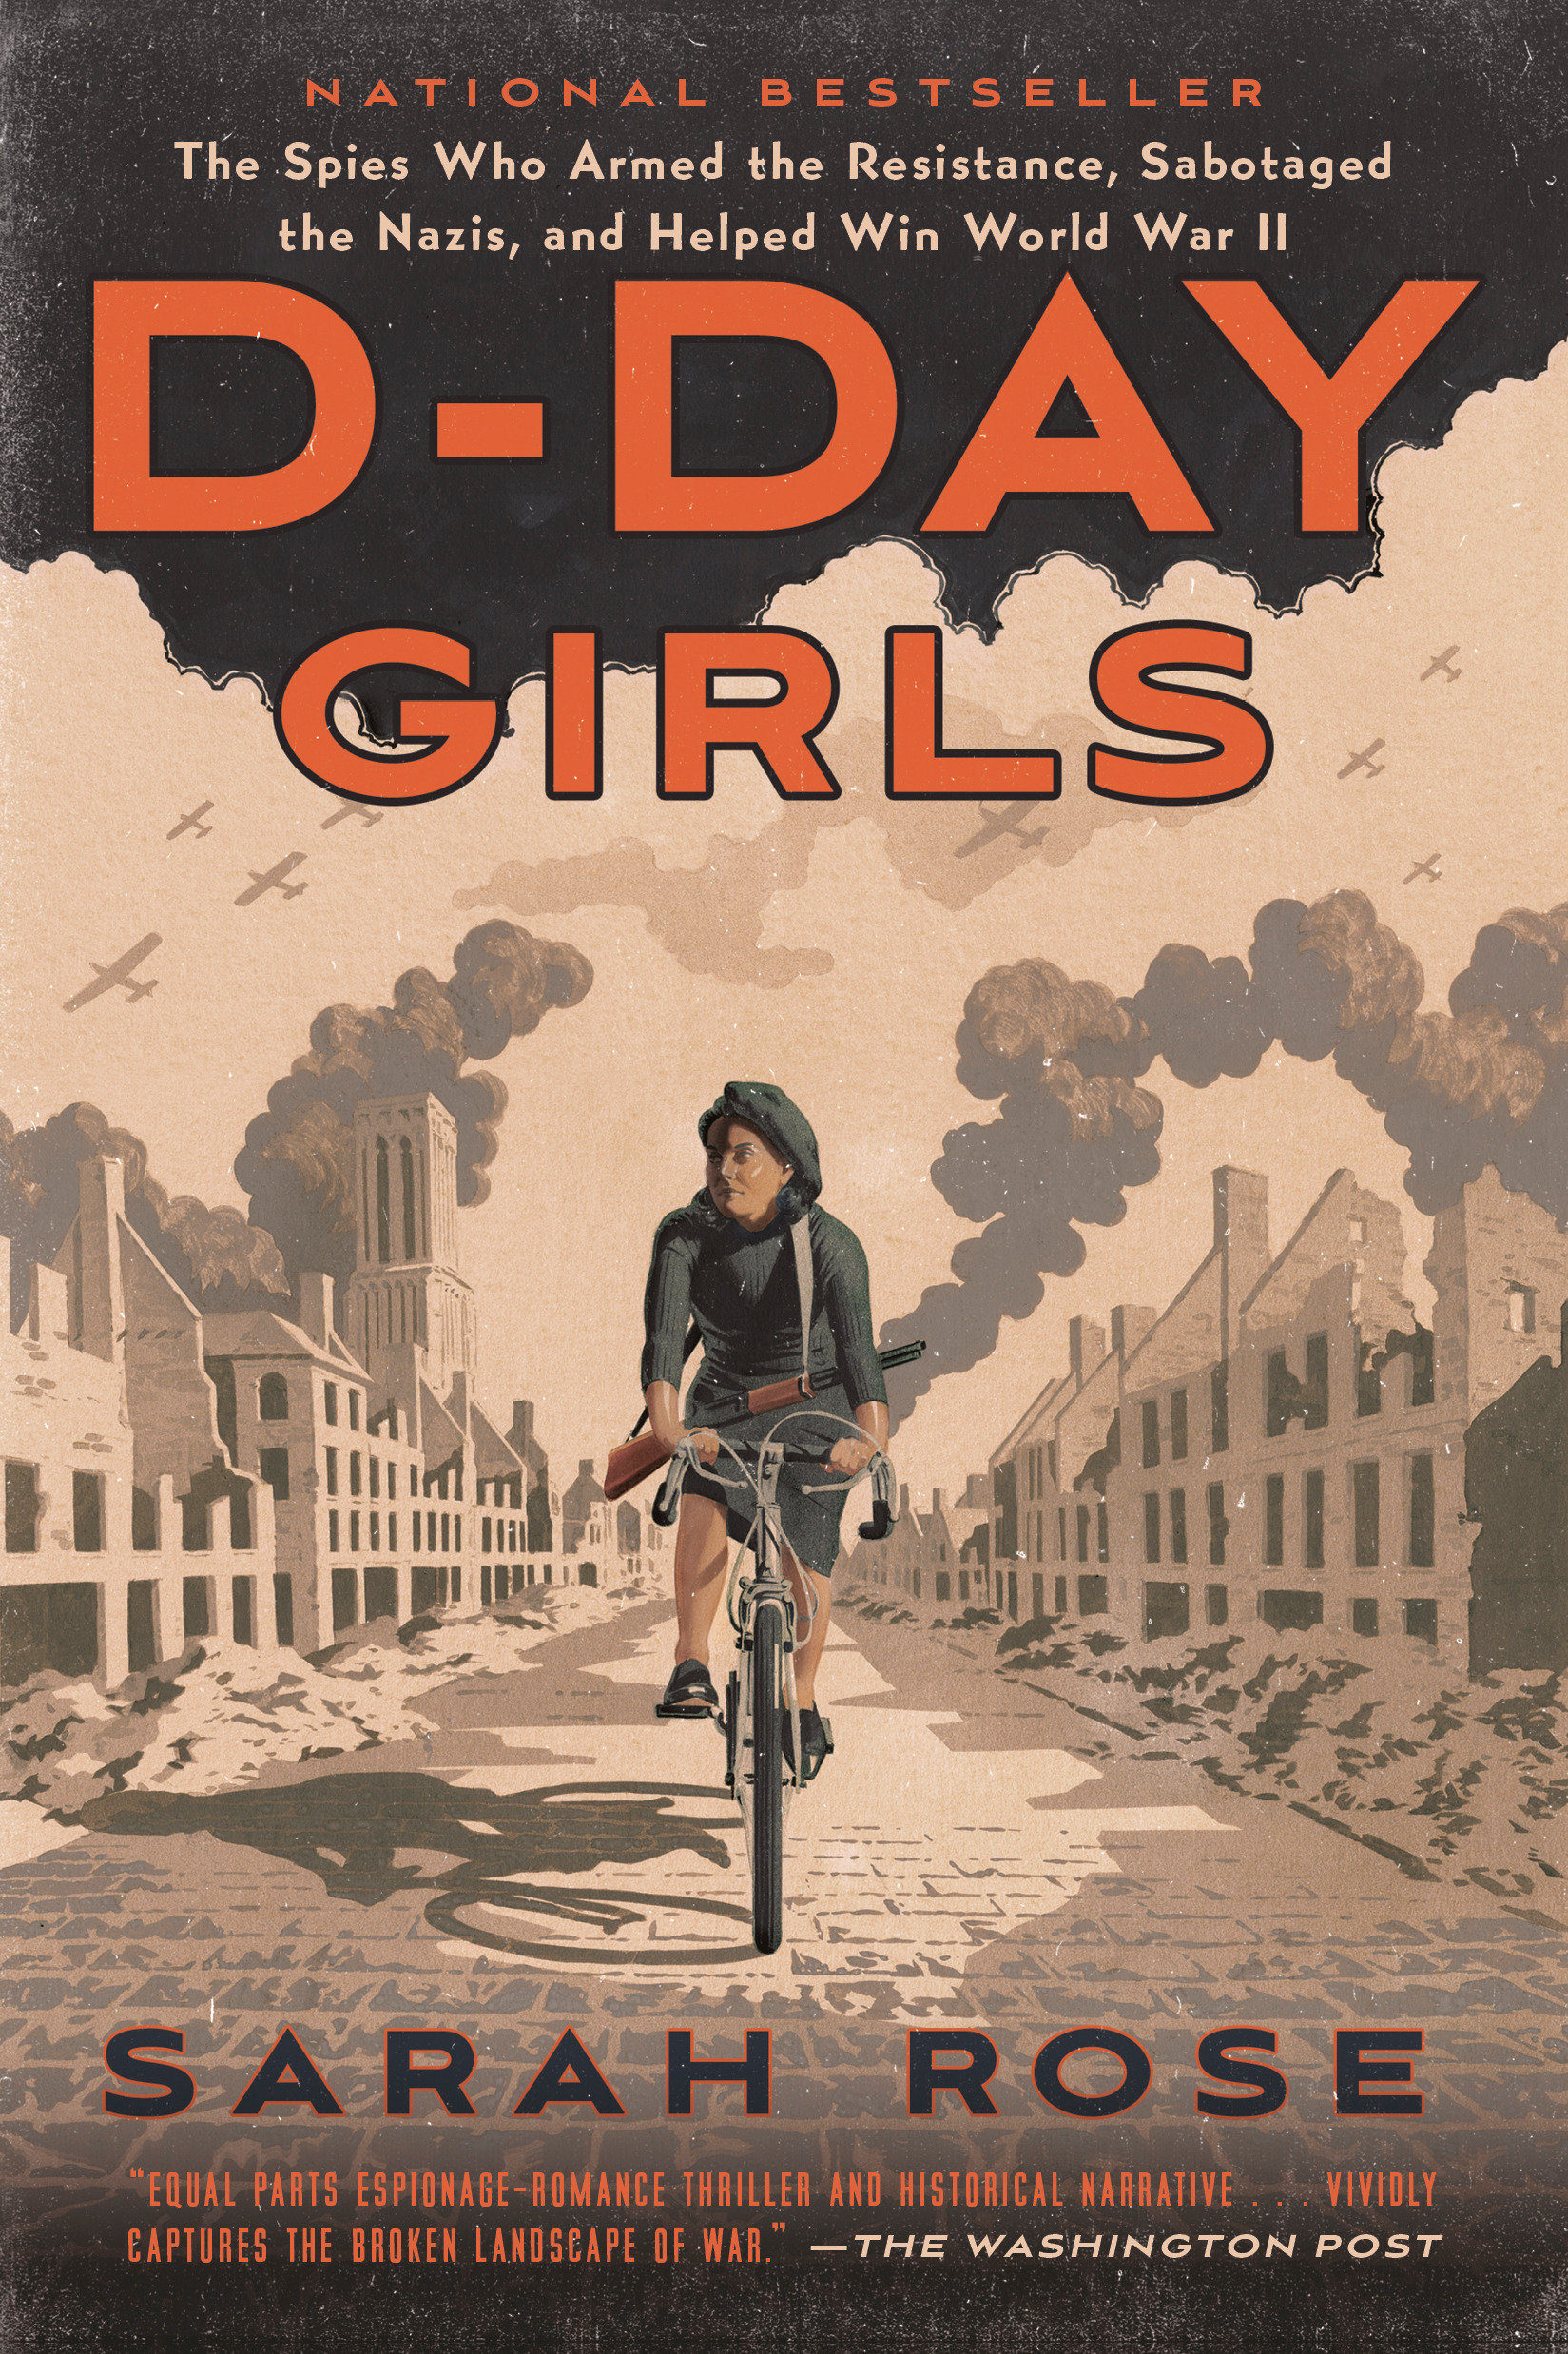 D-Day Girls The Spies Who Armed the Resistance, Sabotaged the Nazis, and Helped Win World War II